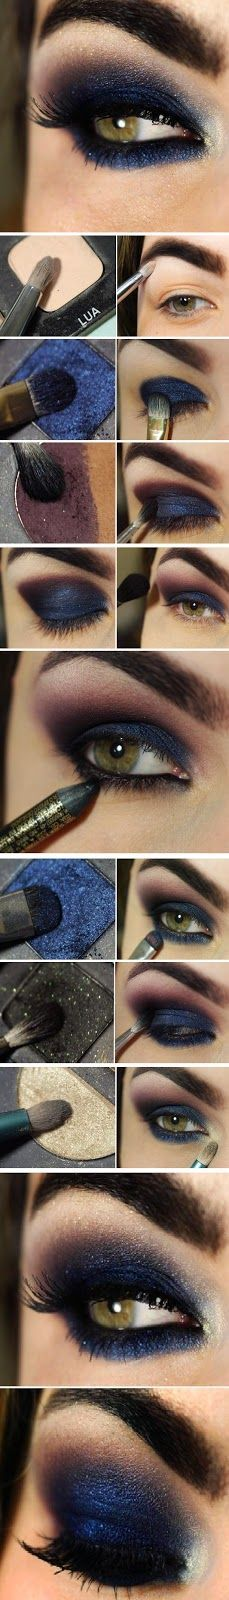 How to : Navy blue palette Makeup Tutorials - Step by Step / LoLus Makeup Fashion http://thepageantplanet.com/category/hair-and-makeup/